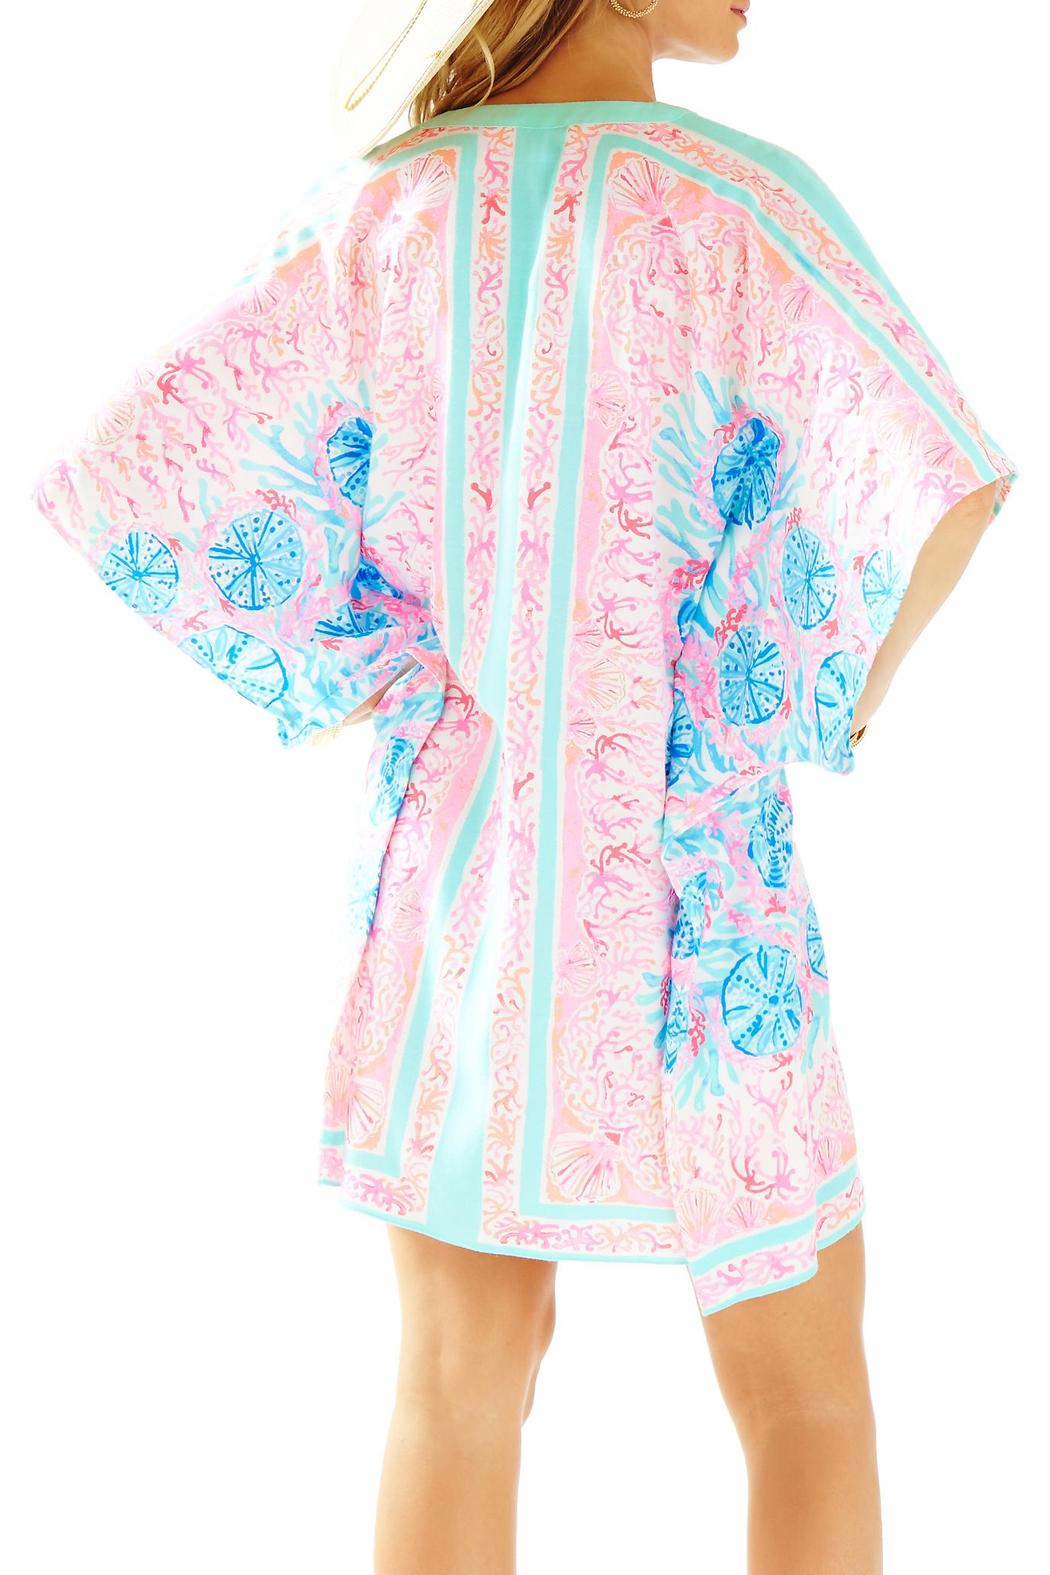 $198 New Lilly Pulitzer THEA V-NECK CAFTAN DRESS Pewter Pink Sole Seaurchin